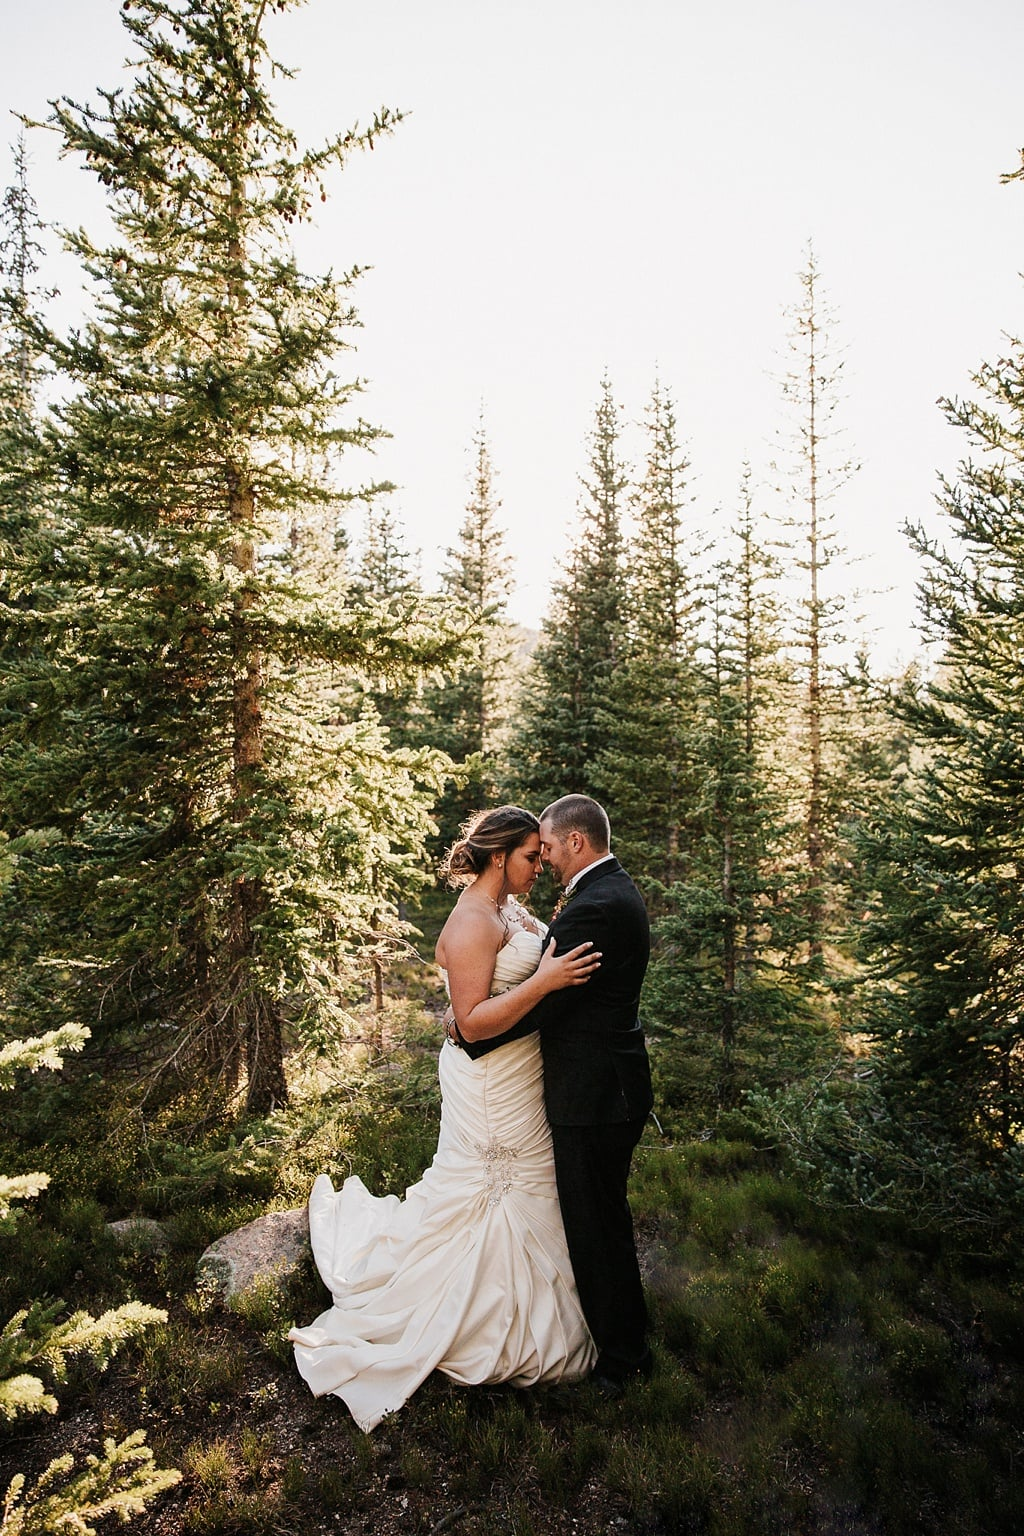 Lunch Rock Winter Park Resort Wedding Colorado Bride and groom quiet moment in trees woods forest